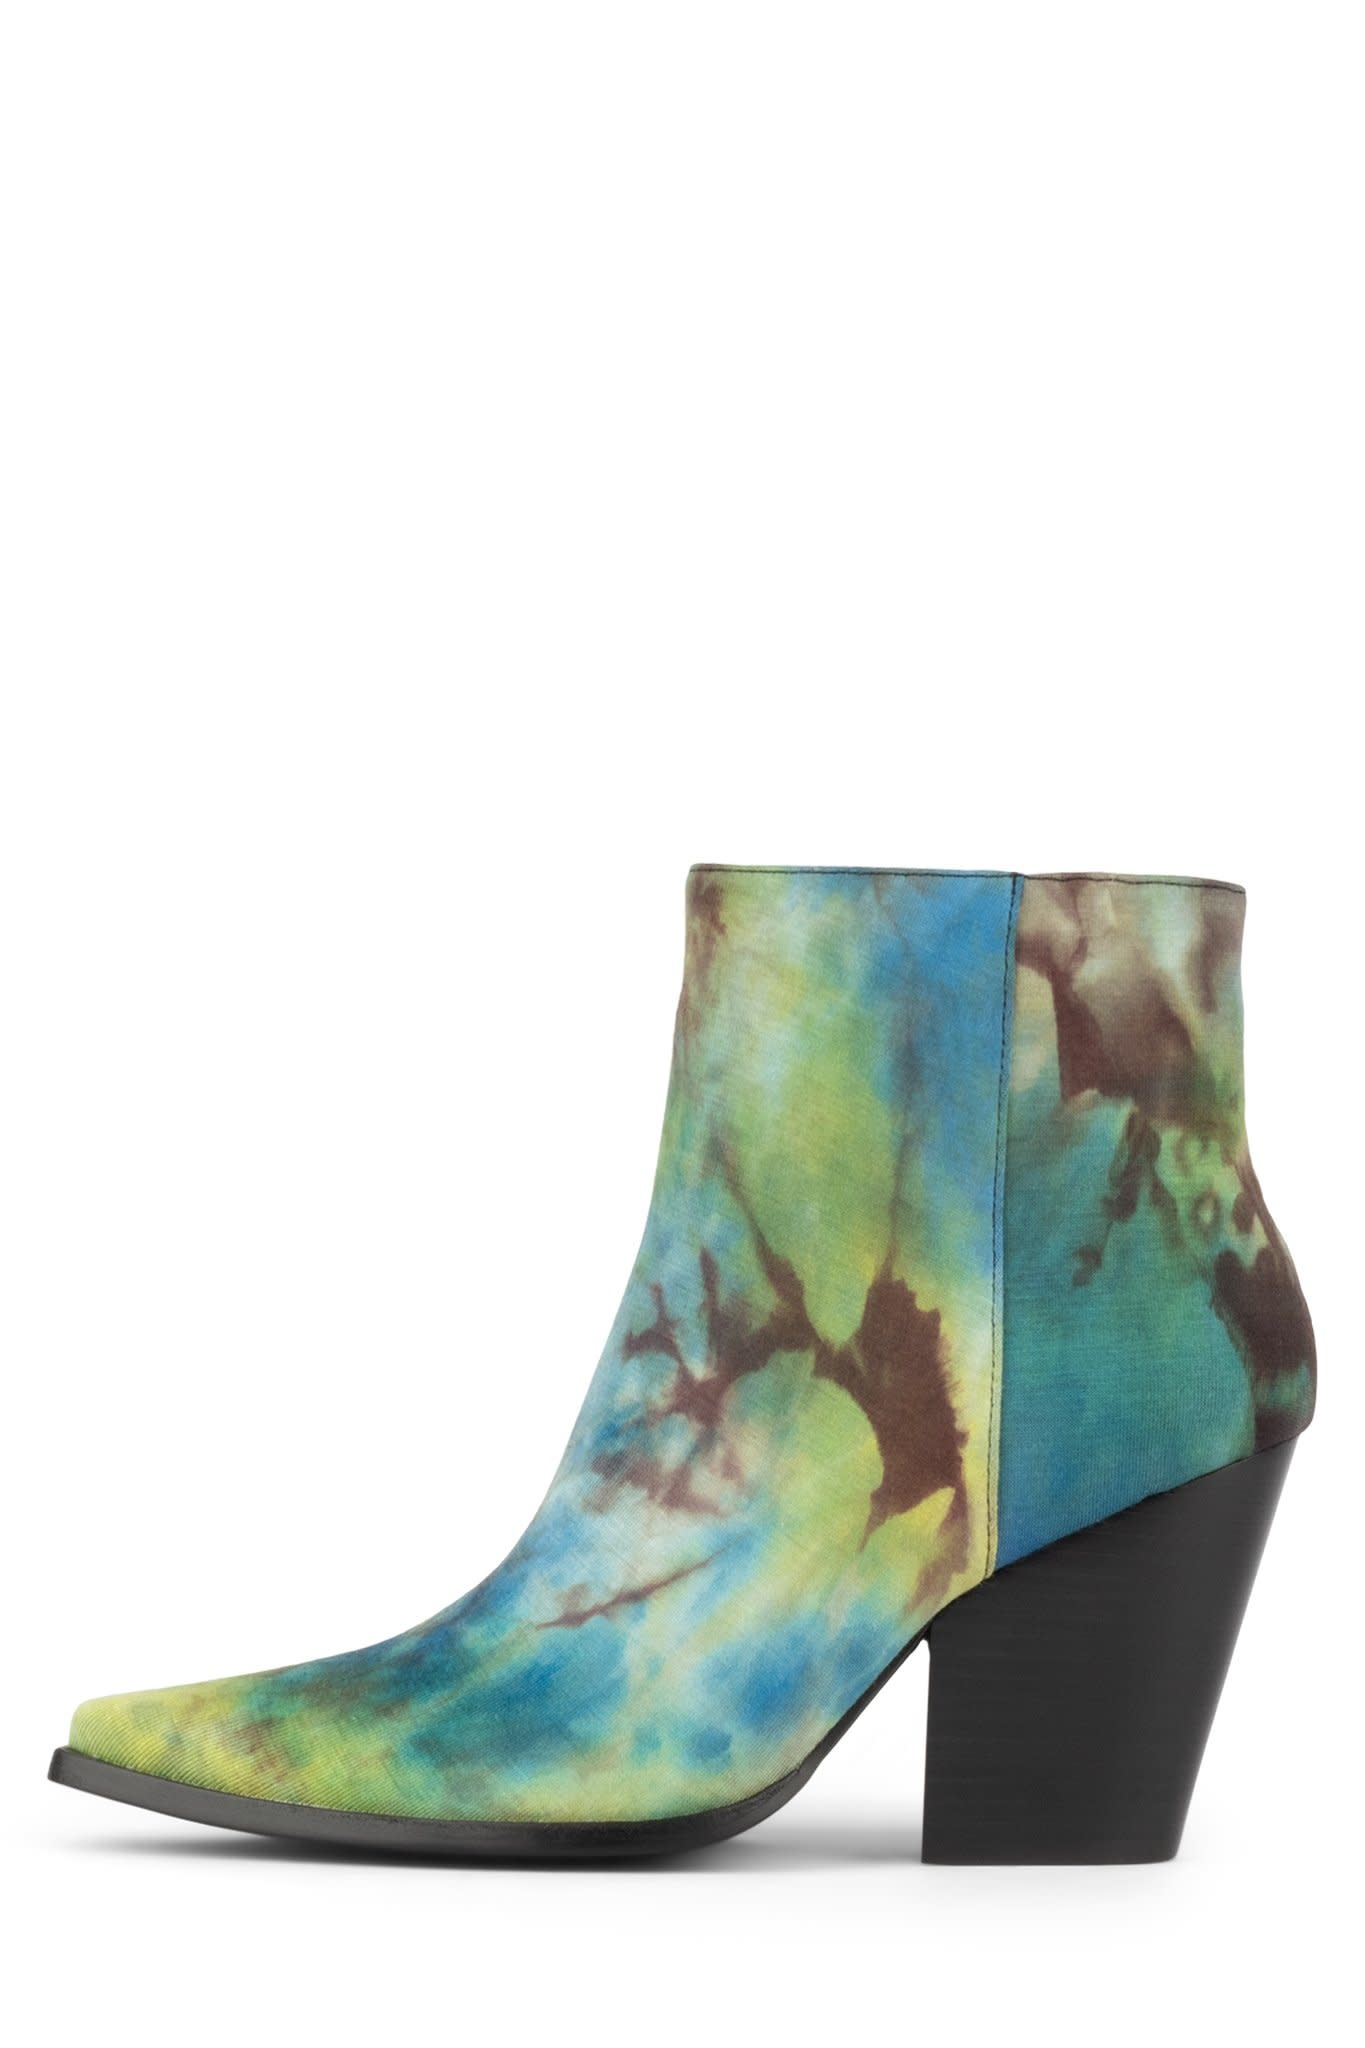 Jeffrey Campbell Elevated Tie Dye Bootie